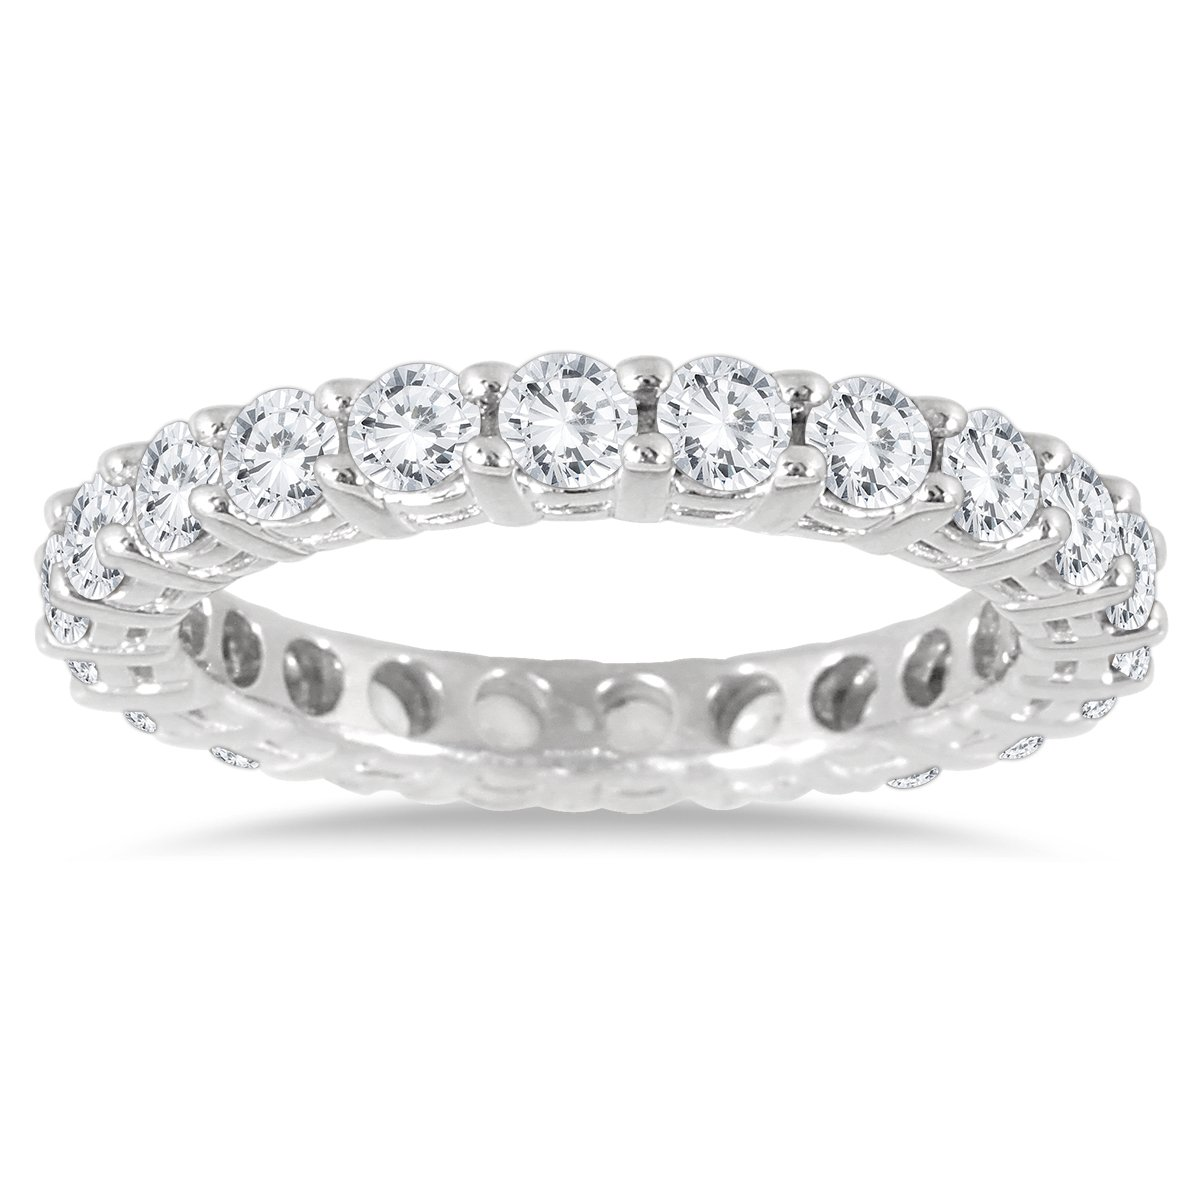 2 Carat TW AGS Certified 14K White Gold Diamond Eternity Band (K-L Color, I2-I3 Clarity) by Szul (Image #1)